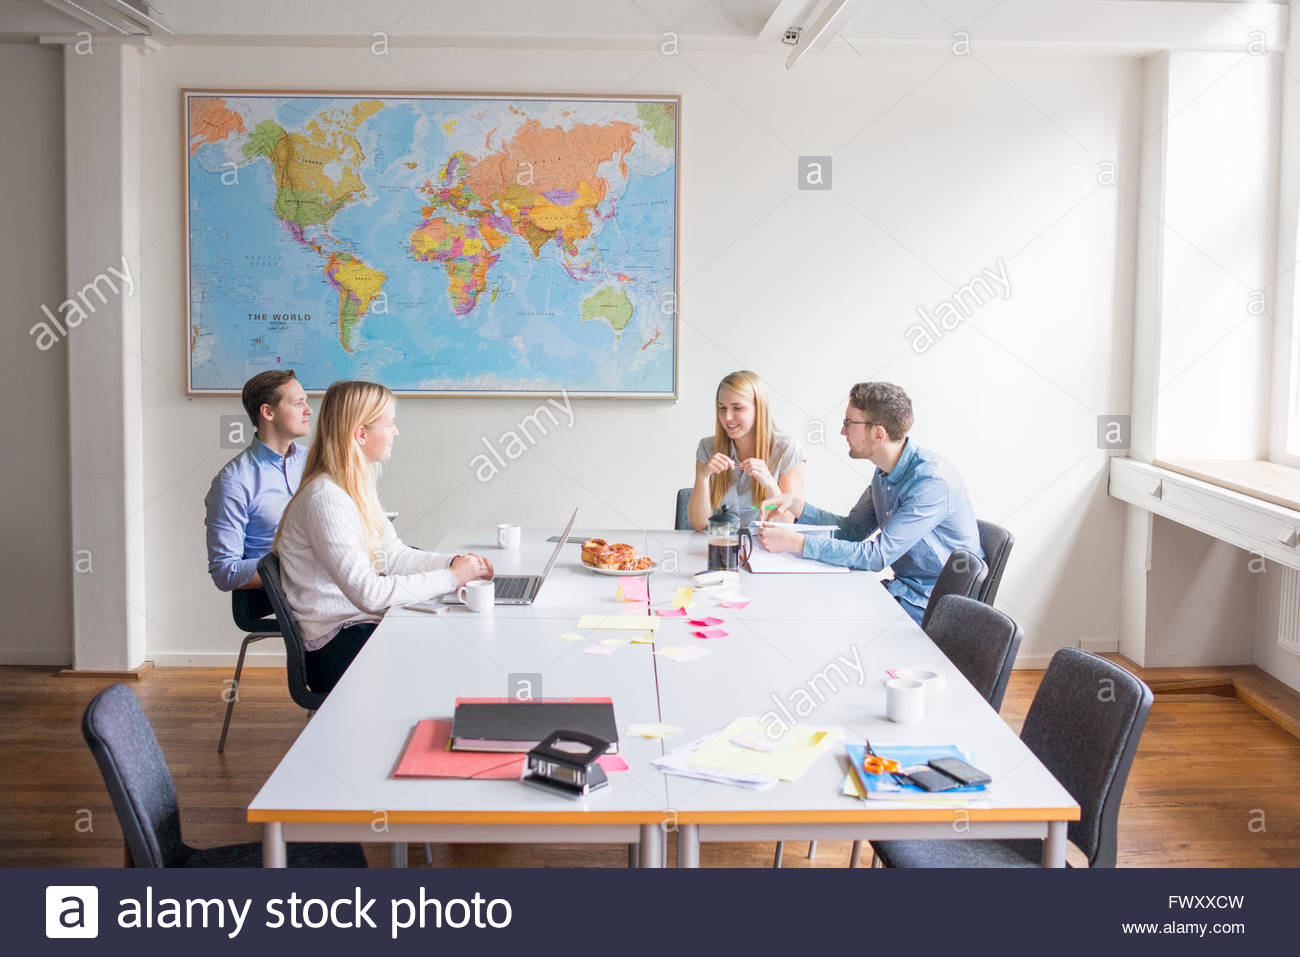 Sweden, Business people talking in board room - Stock Image